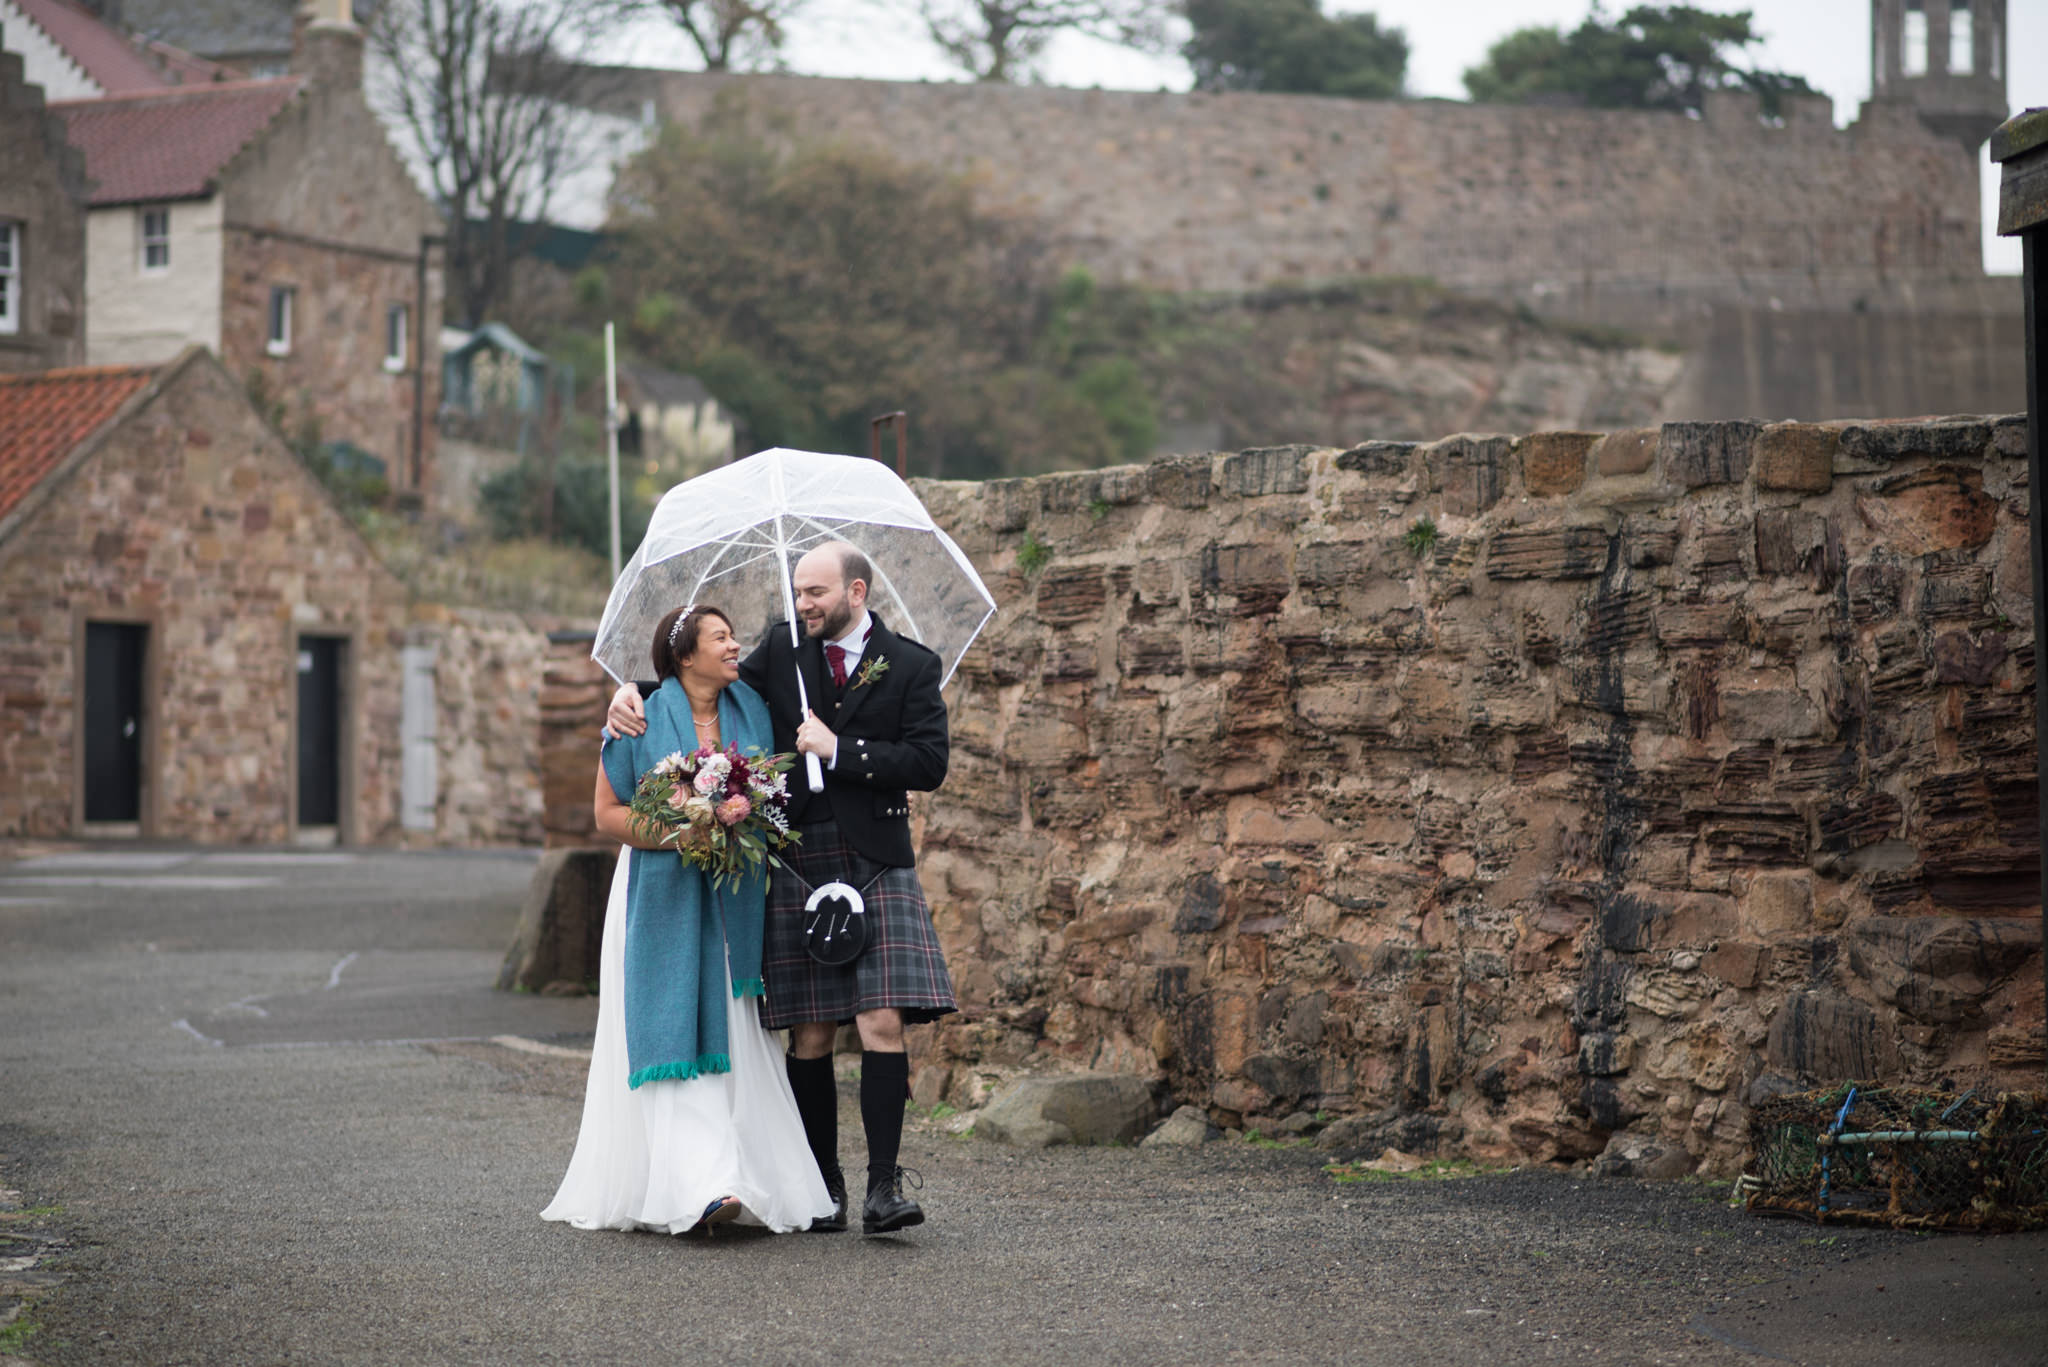 Caz and Martin's wedding at The Cow Shed, Crail - 19 October 2017 - © Photography by Juliebee